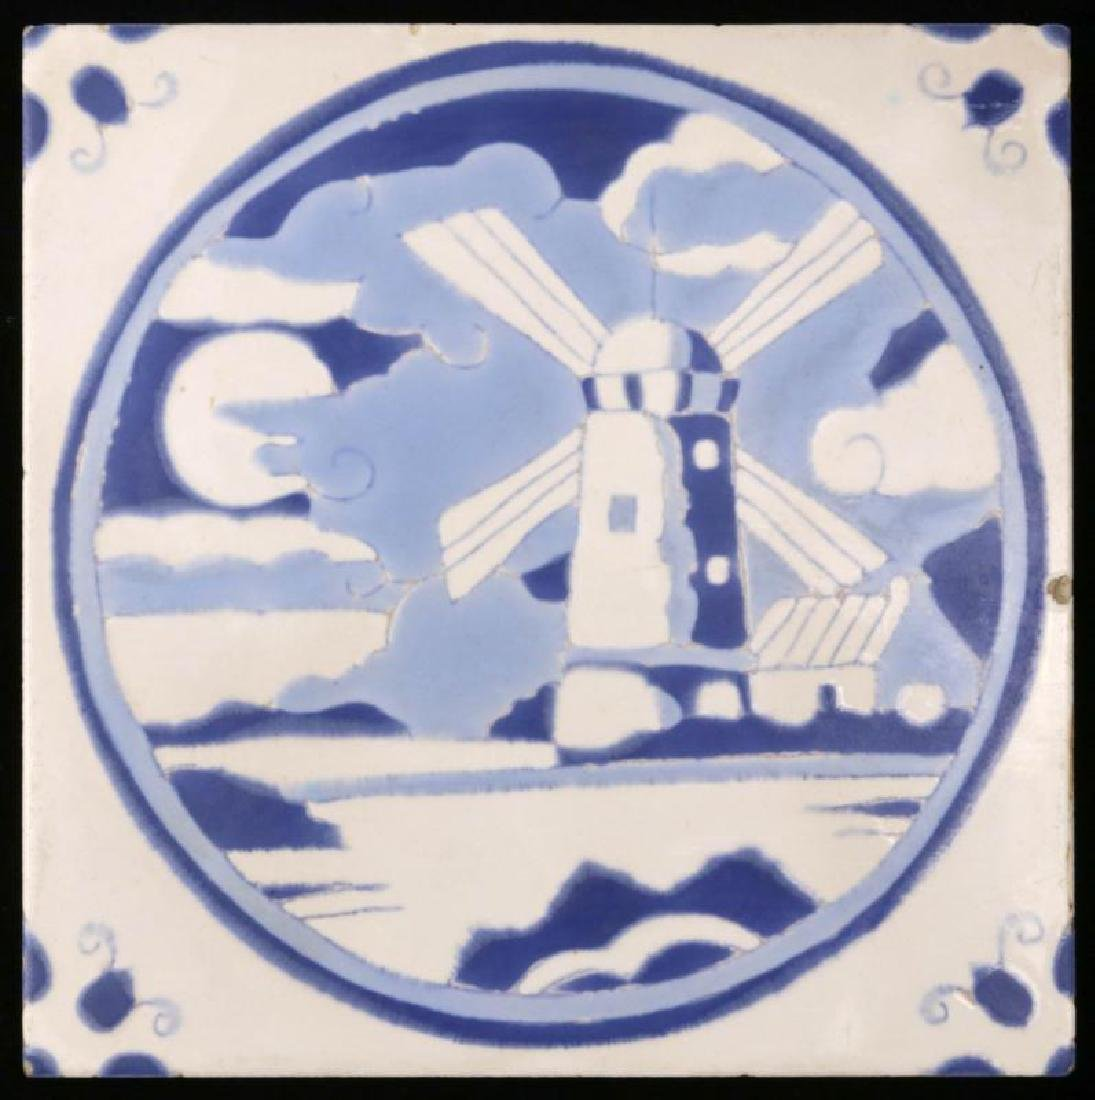 A GLADDING McBEAN HERMOSA ART TILE